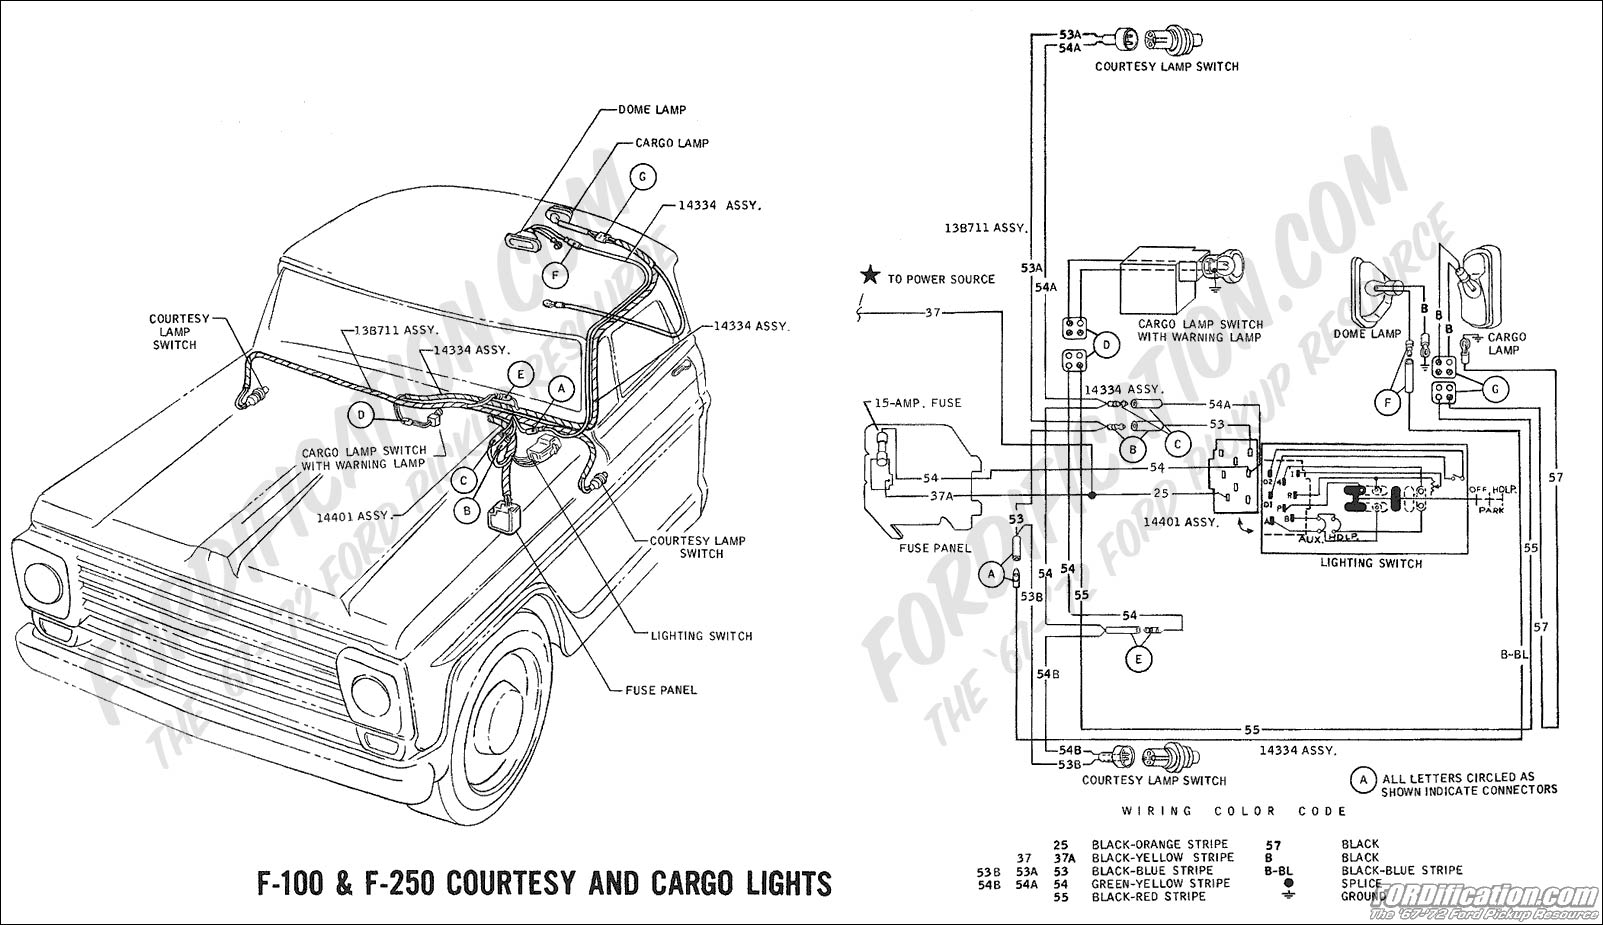 Garden Shed Wiring Diagram additionally 1996 Ford F150 Dual Fuel Tank Problems together with UAEZRC moreover 2005 Ford Escape Wiring Diagram as well F150 49l Motor Diagram. on ford f150 wiring schematics